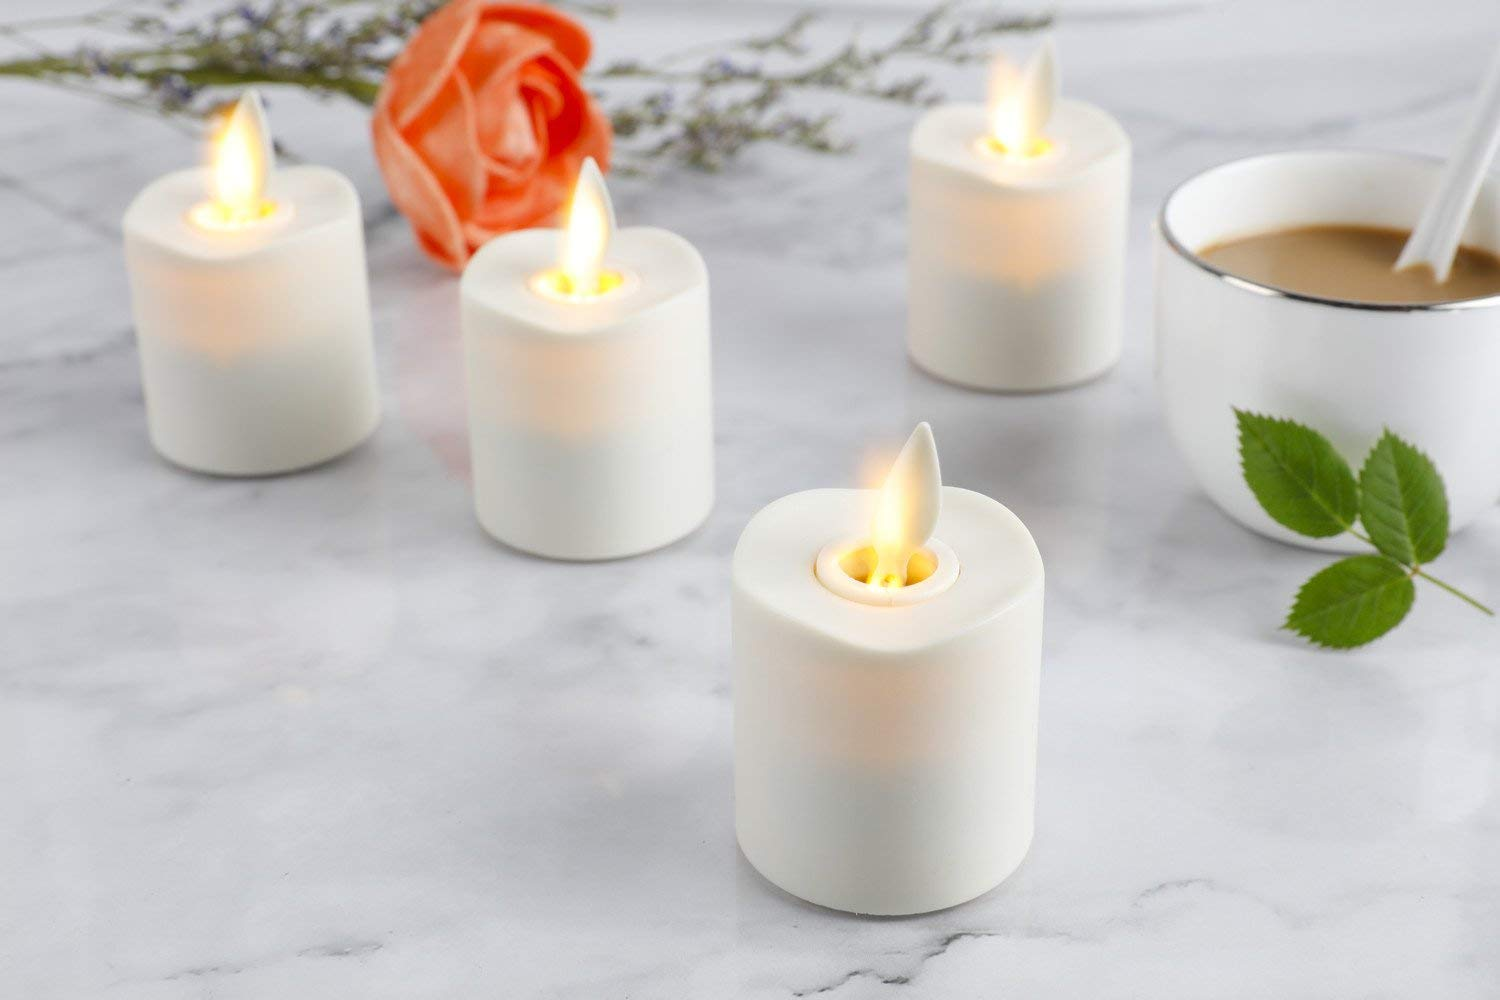 Set of 6 Battery Operated Flameless Votive Candles with Remote and Timer , 1.5 X 2.4in, 6- CR2450 batteries (Free) Last 120 hours by NONNO&ZGF (Image #5)